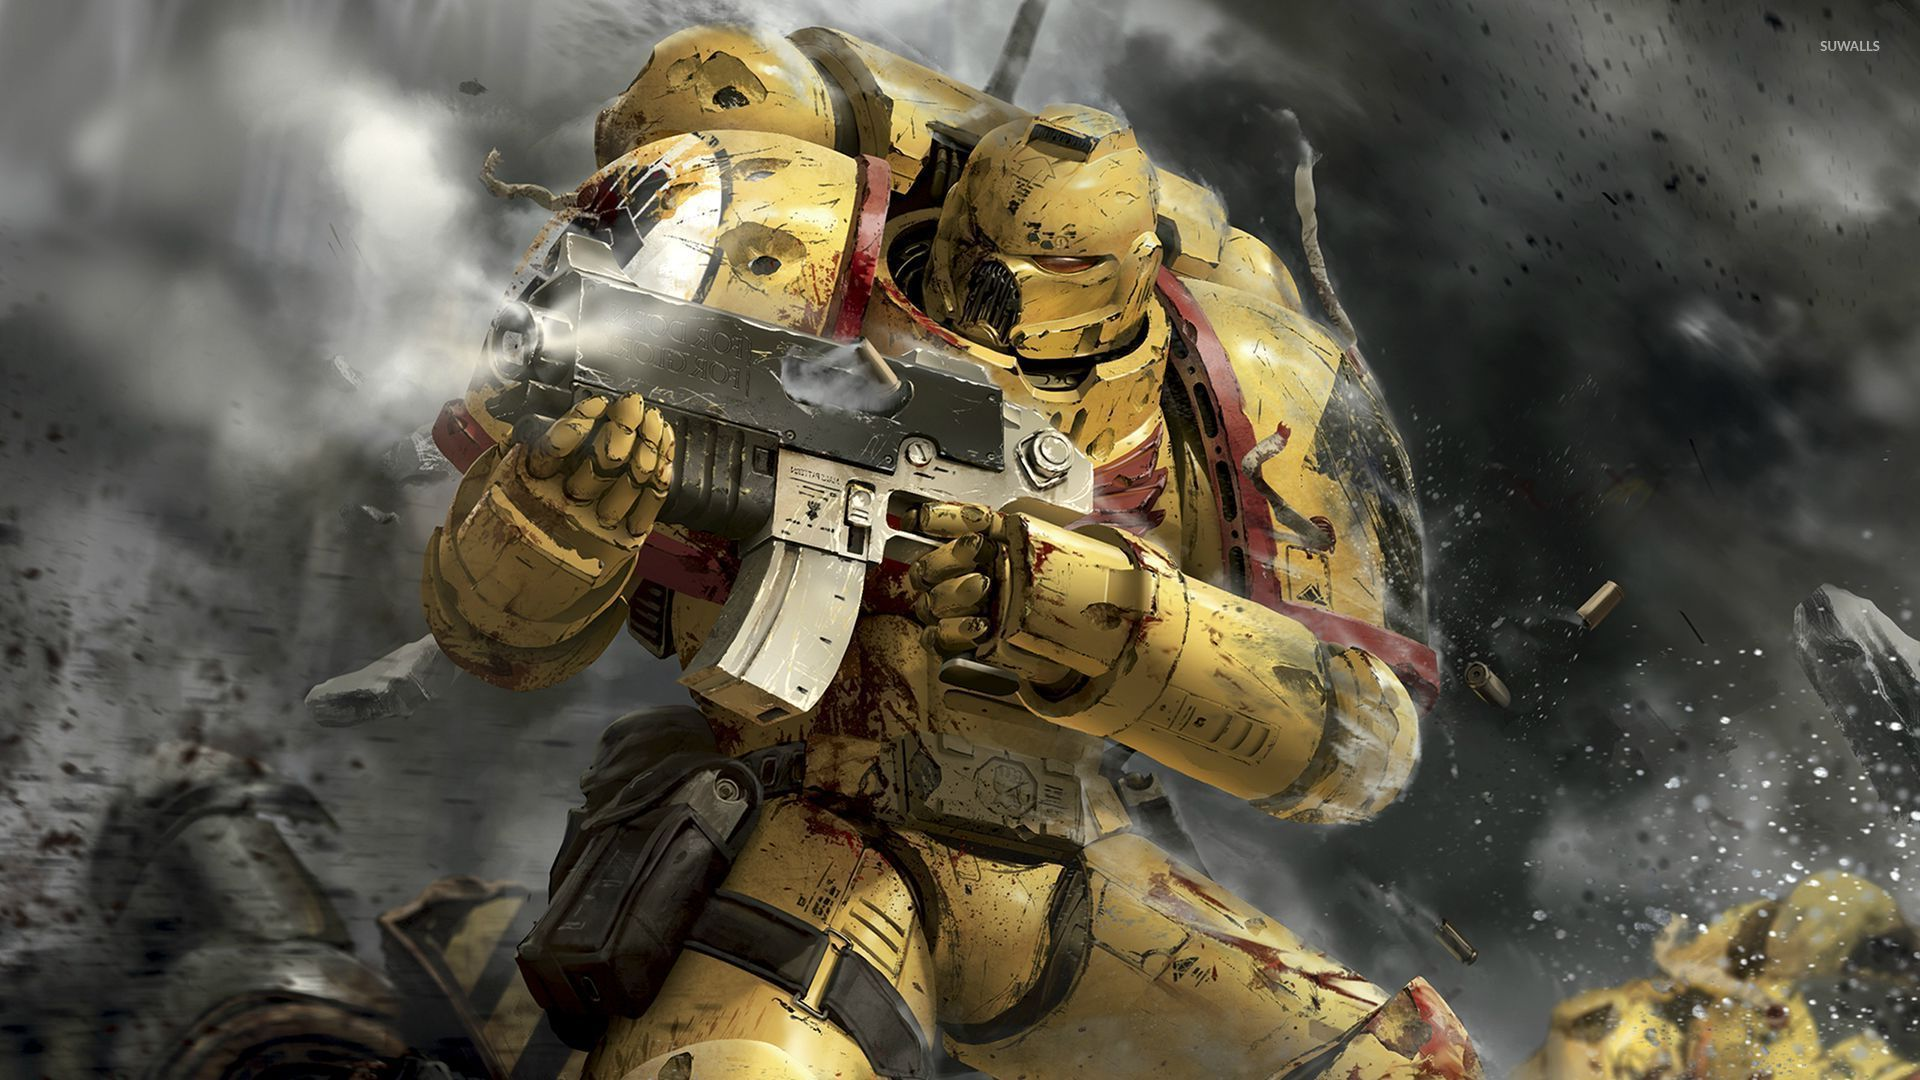 Warhammer 40k Eldar Hd1 Desktop Wallpaper Picture Hd Walls Find Space Marine Imperial Fist Warhammer 40k